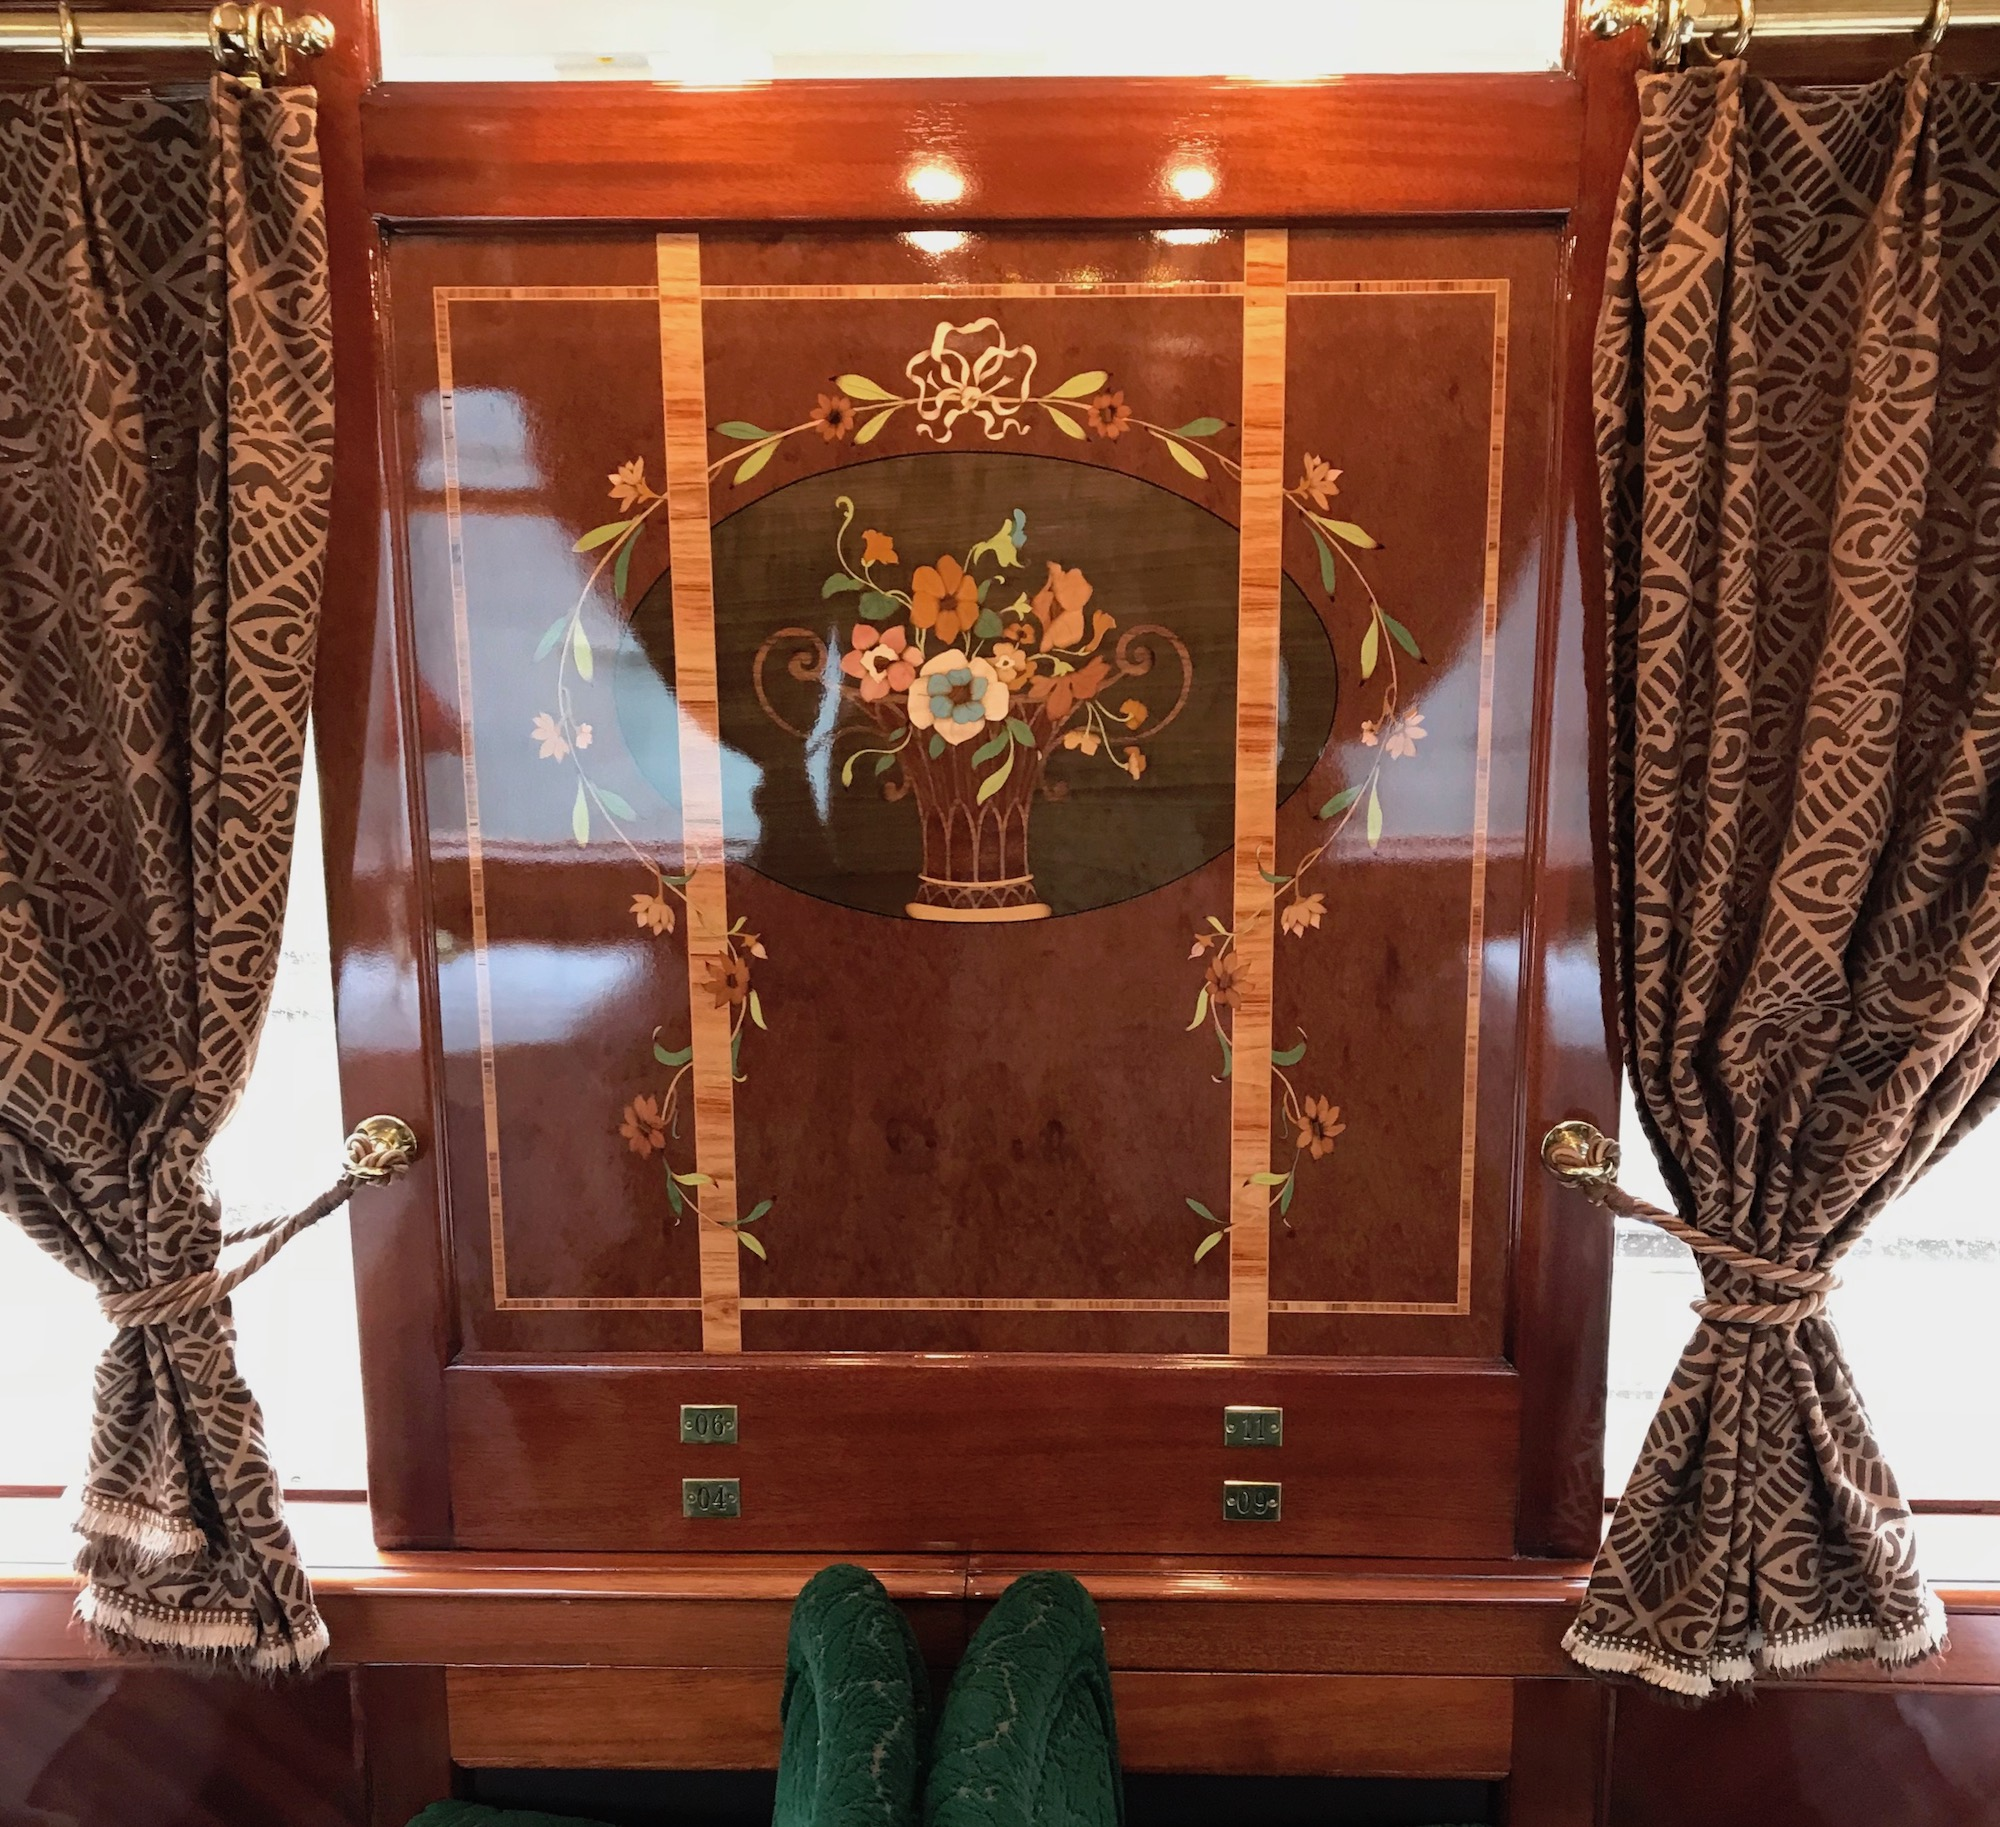 Inlaid wood work in the Orient Express.jpg